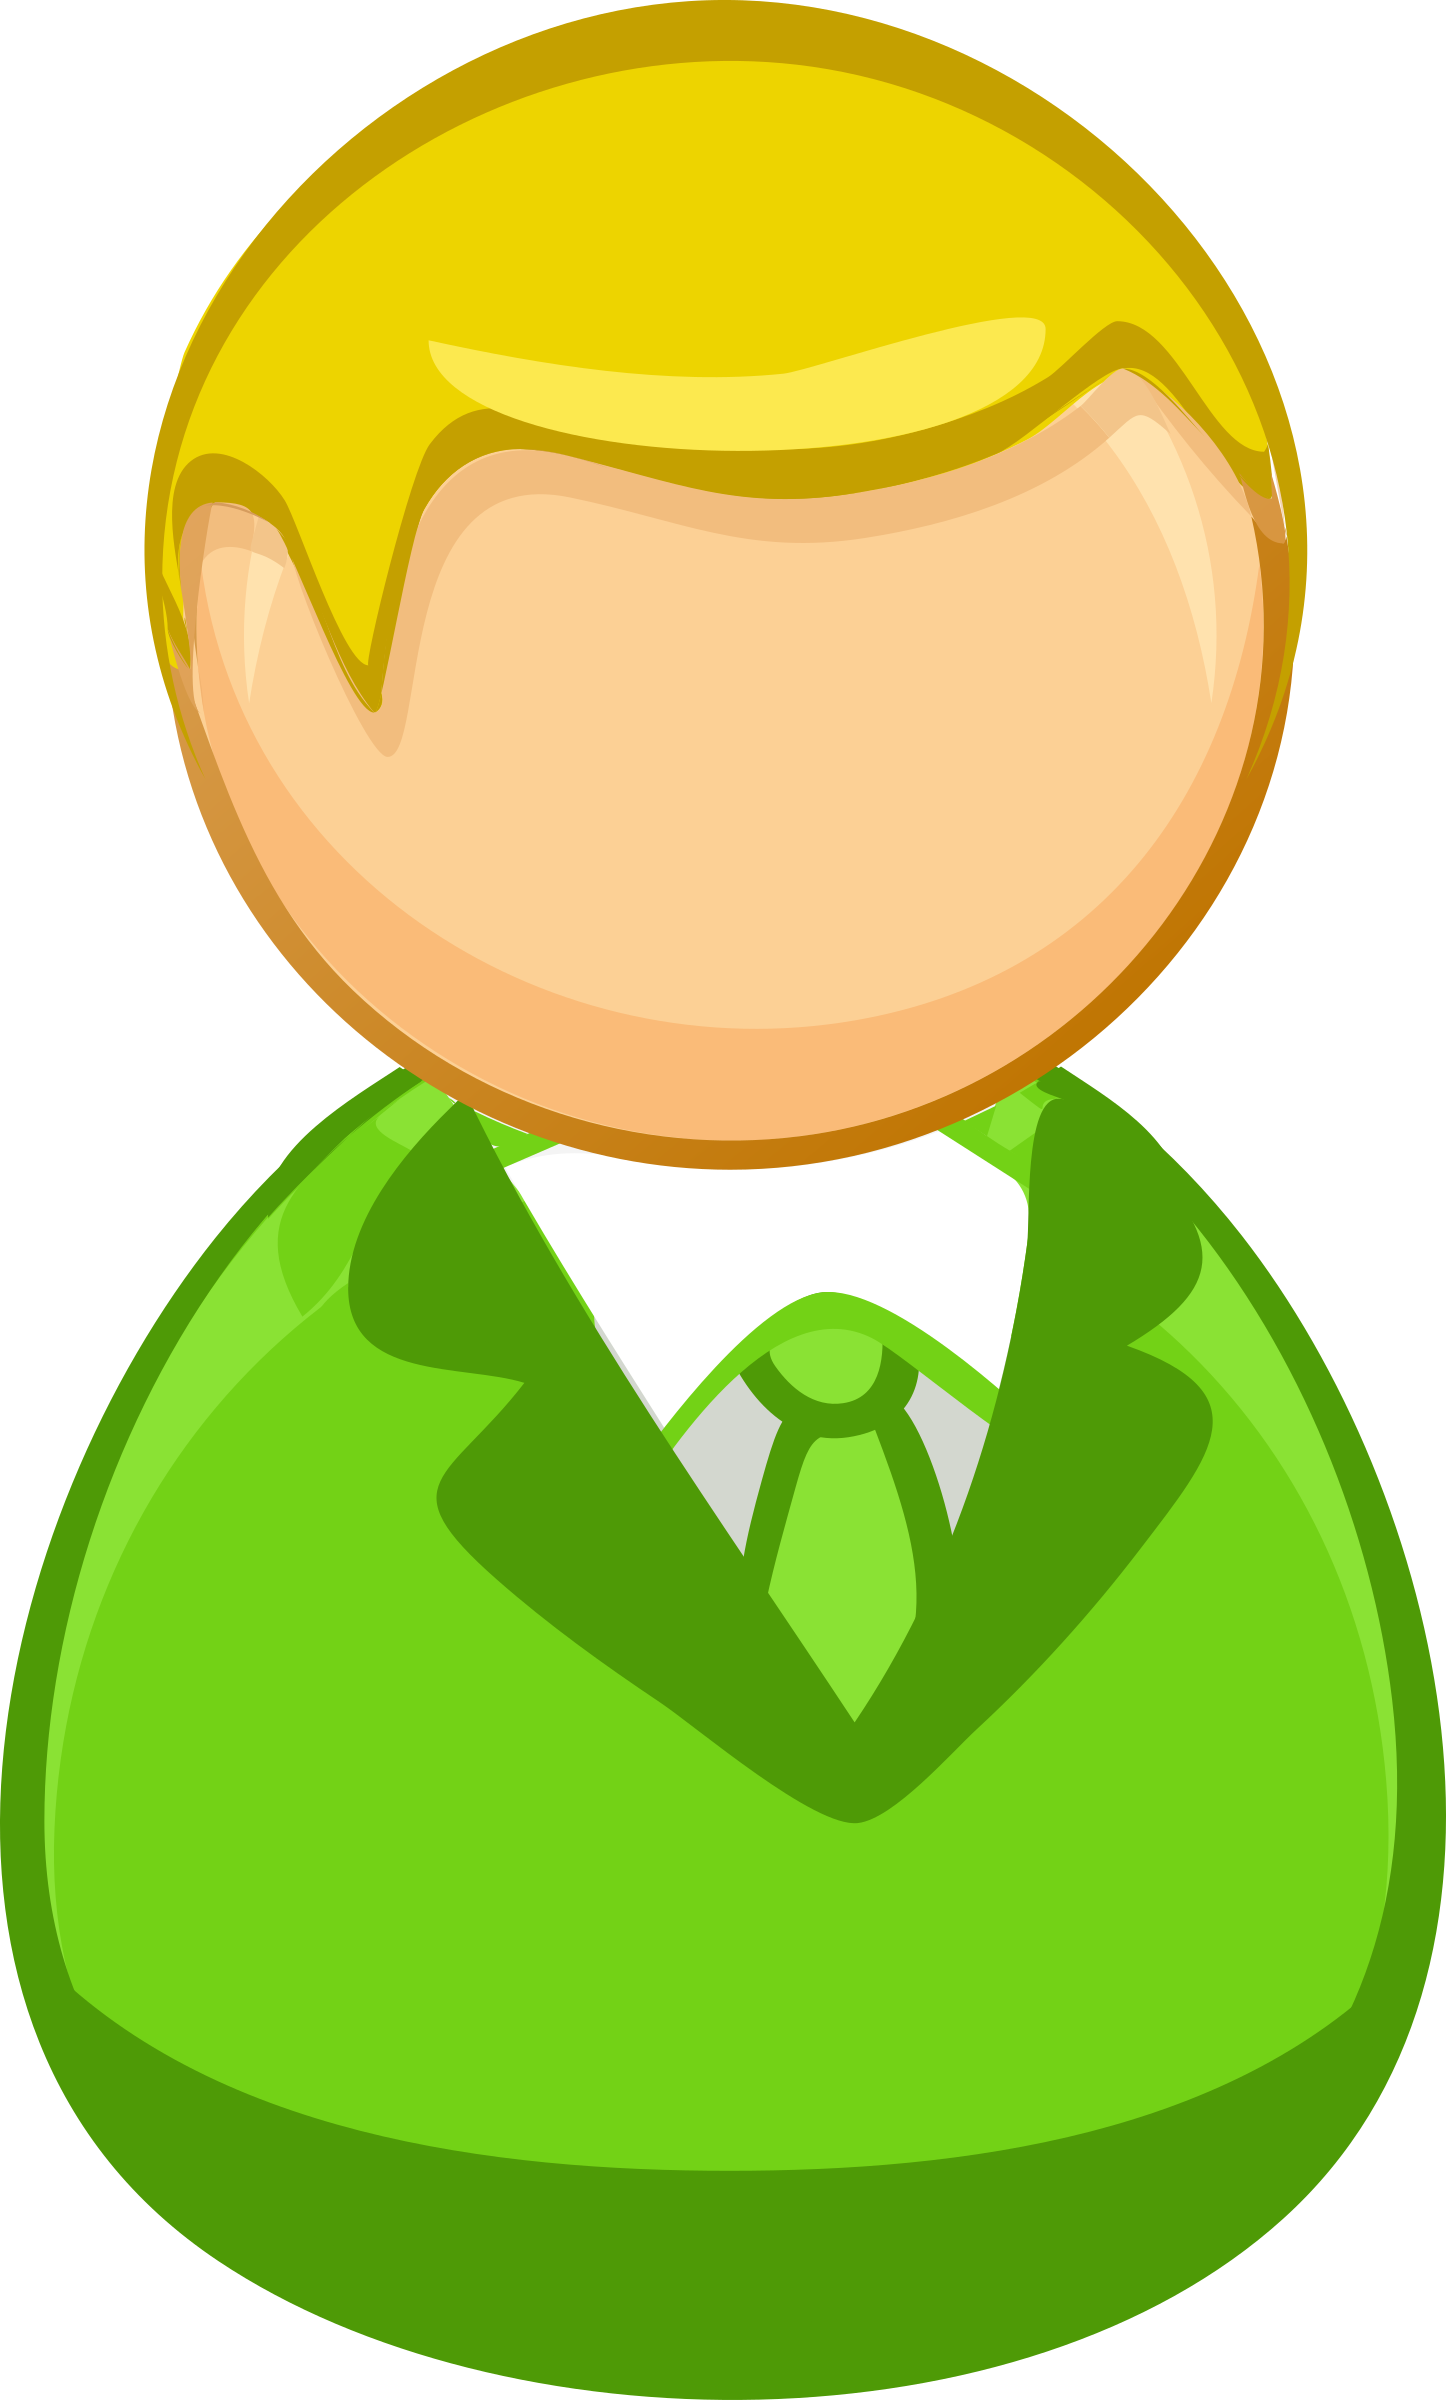 Architetto remix - Green blond man icon by alexg